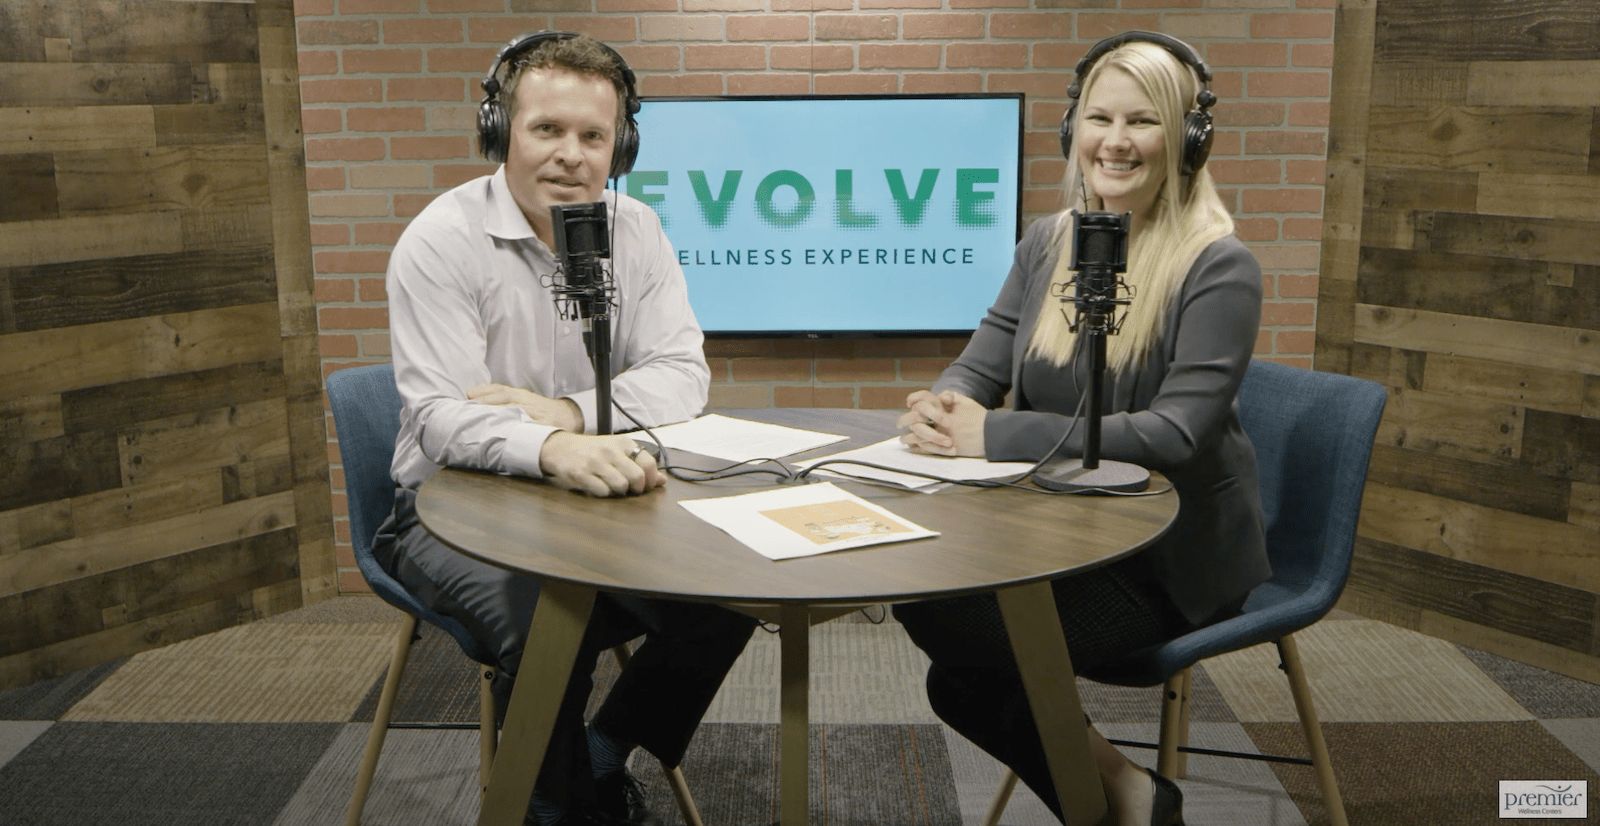 Dr. Bill and Dr. Amber discuss fasting